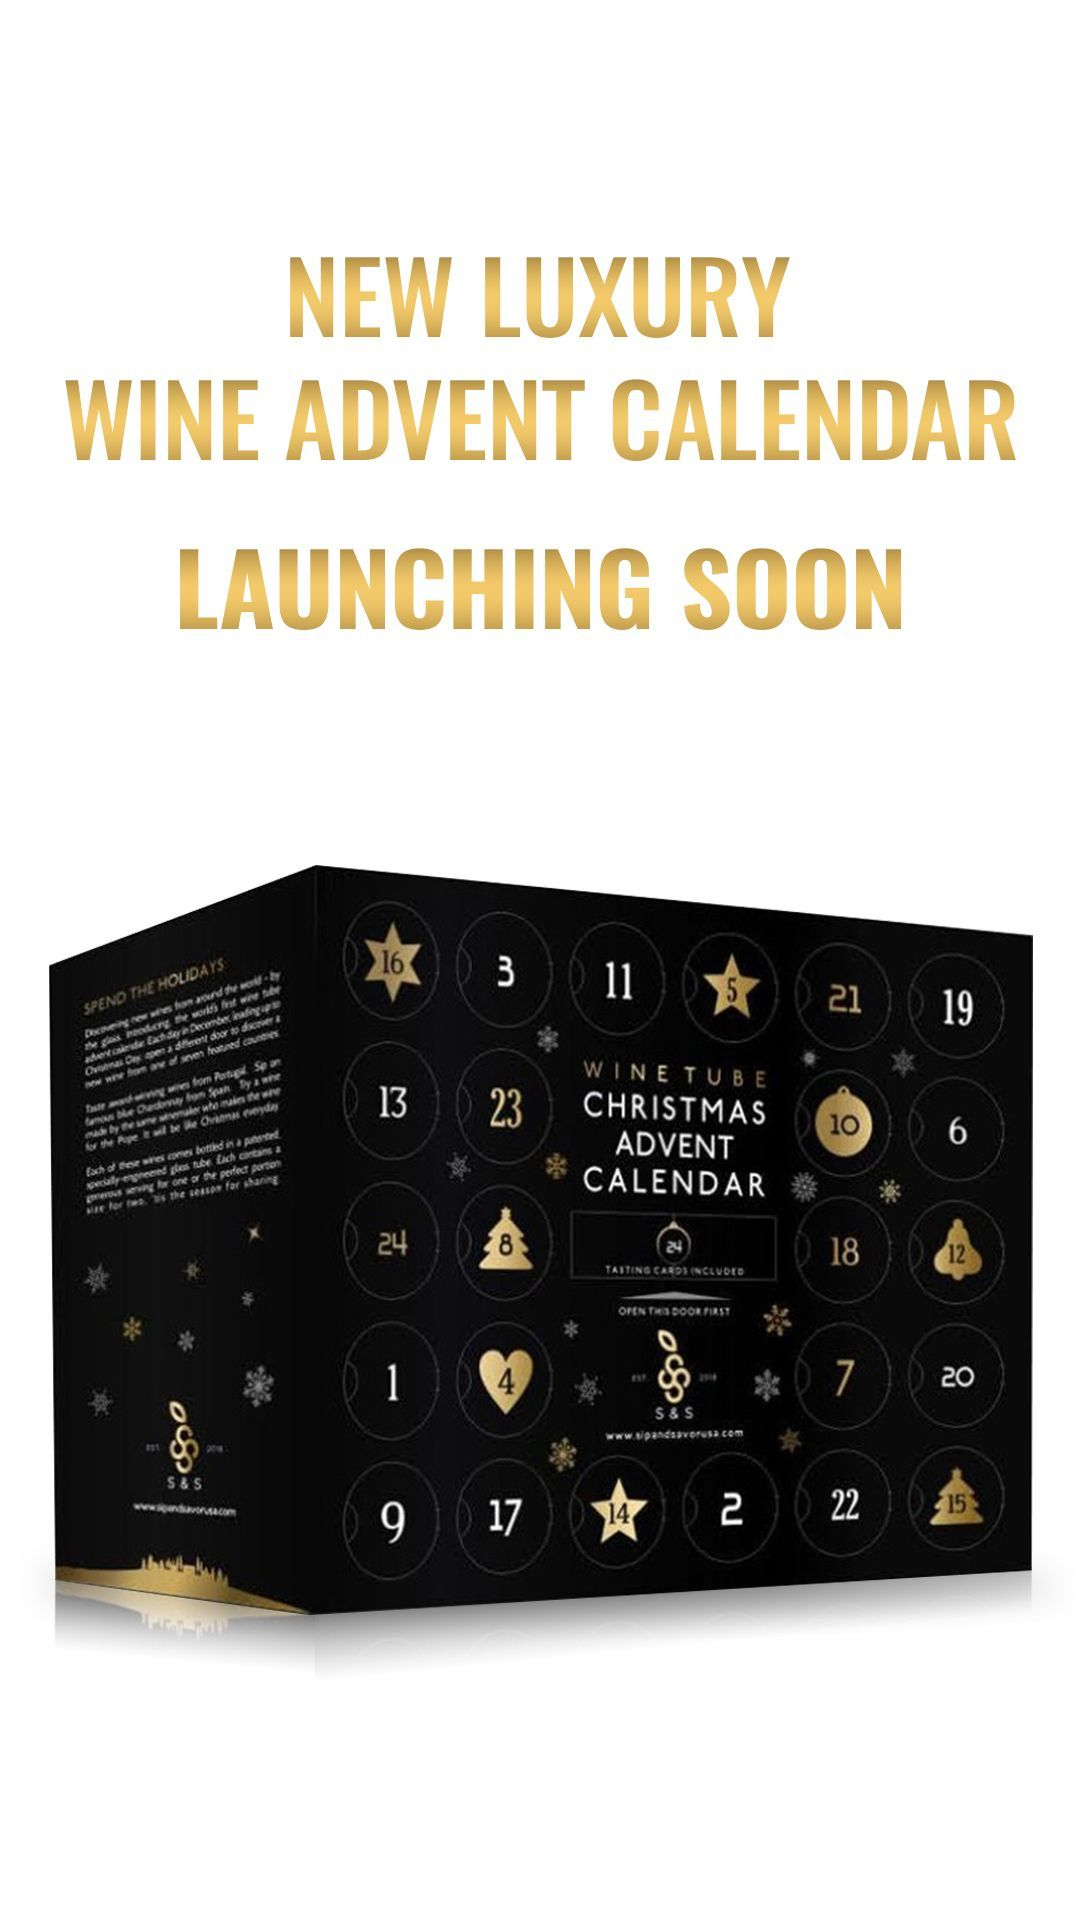 Luxury Wine Advent Calendar #wineadventcalendardiy California couple soon will be launching the world's first luxury Wine Advent Calendar.  Comes with 24 handcrafted wines, from 7 different countries, for $99 (limited quantities available).  Join the pre-order waiting list for more details. #wineadventcalendardiy